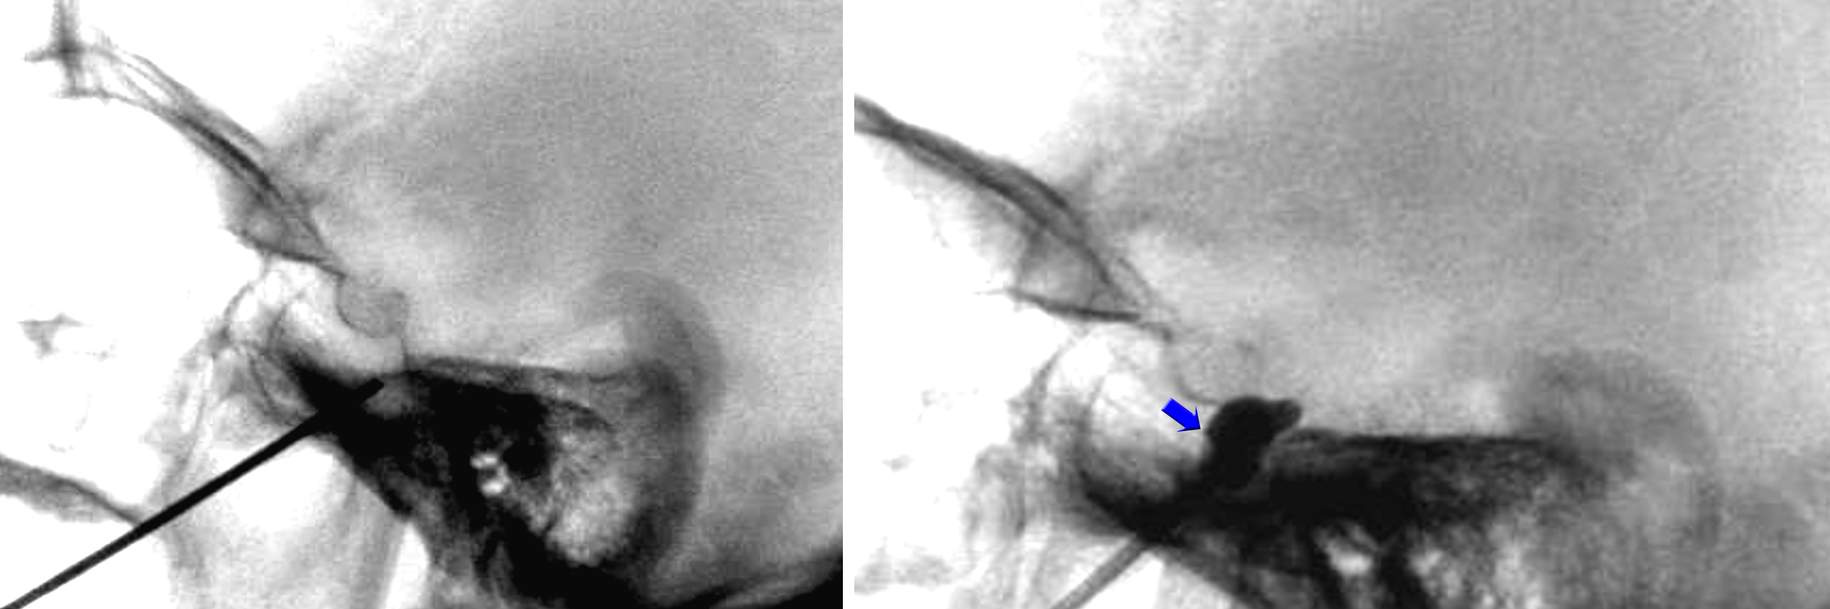 Figure 13: The needle is advanced slightly into the foramen. A lateral fluoroscopic image confirms the final location of the needle tip beyond the skull base (left image). In the case of a balloon compression rhizotomy, the balloon may be inflated within the Gasserian ganglion cistern as demonstrated (right image). The final location of the balloon demonstrates the slight extension of the balloon into the foramen rotundum (blue arrow).